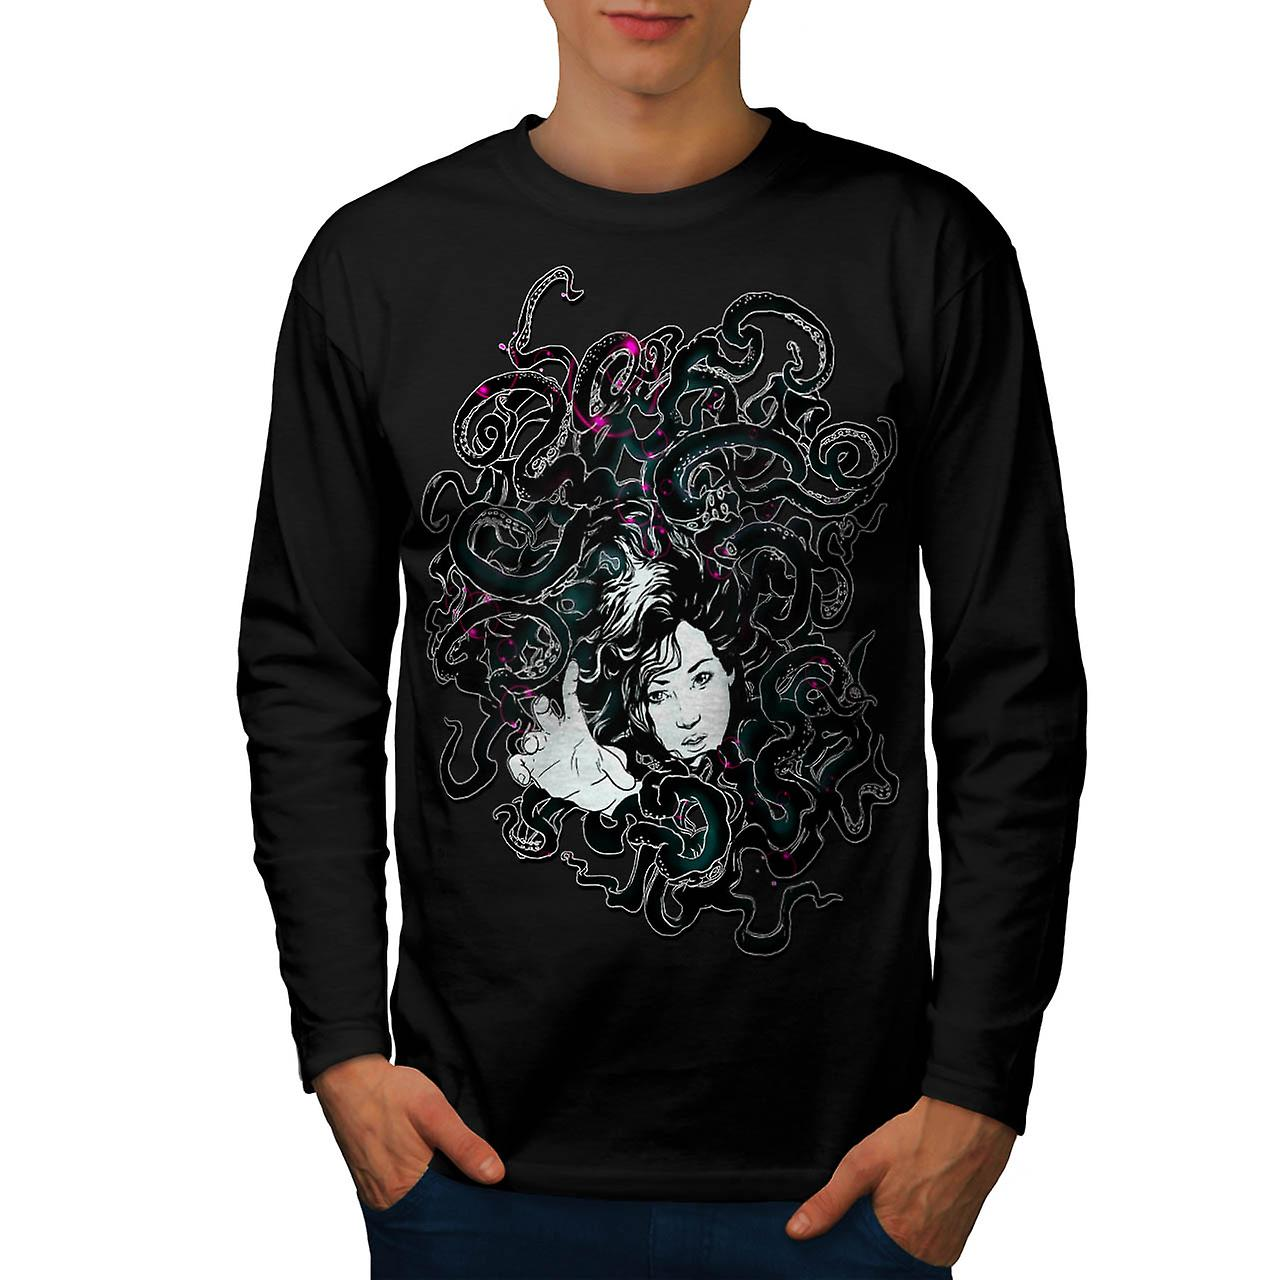 Reach Out For Help Stretch Girl Men Black Long Sleeve T-shirt | Wellcoda